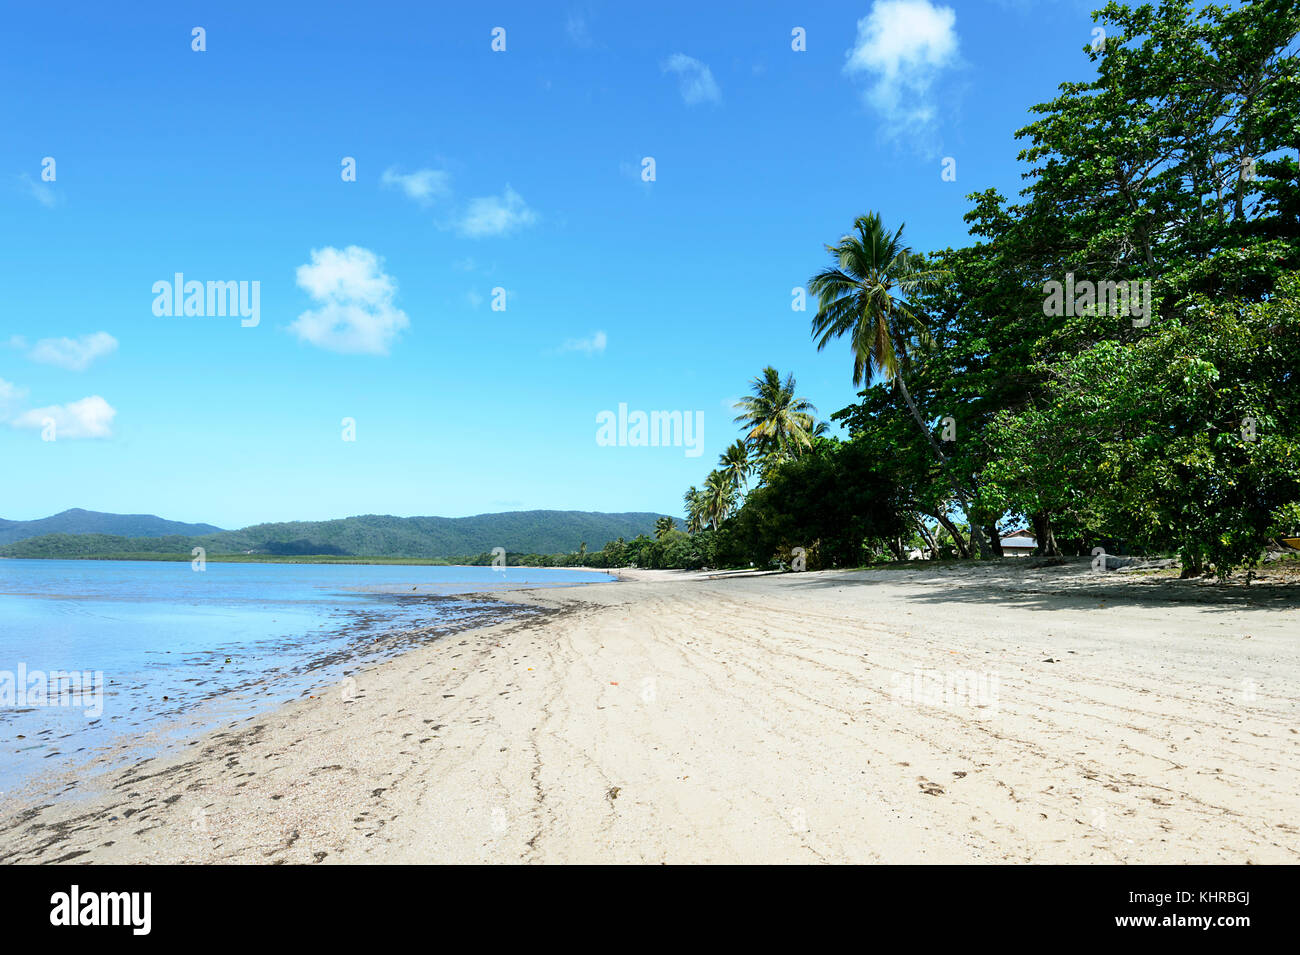 Sandy beach of the Aboriginal Community of Yarrabah, near Cairns, Far North Queensland, FNQ, QLD, Australia - Stock Image